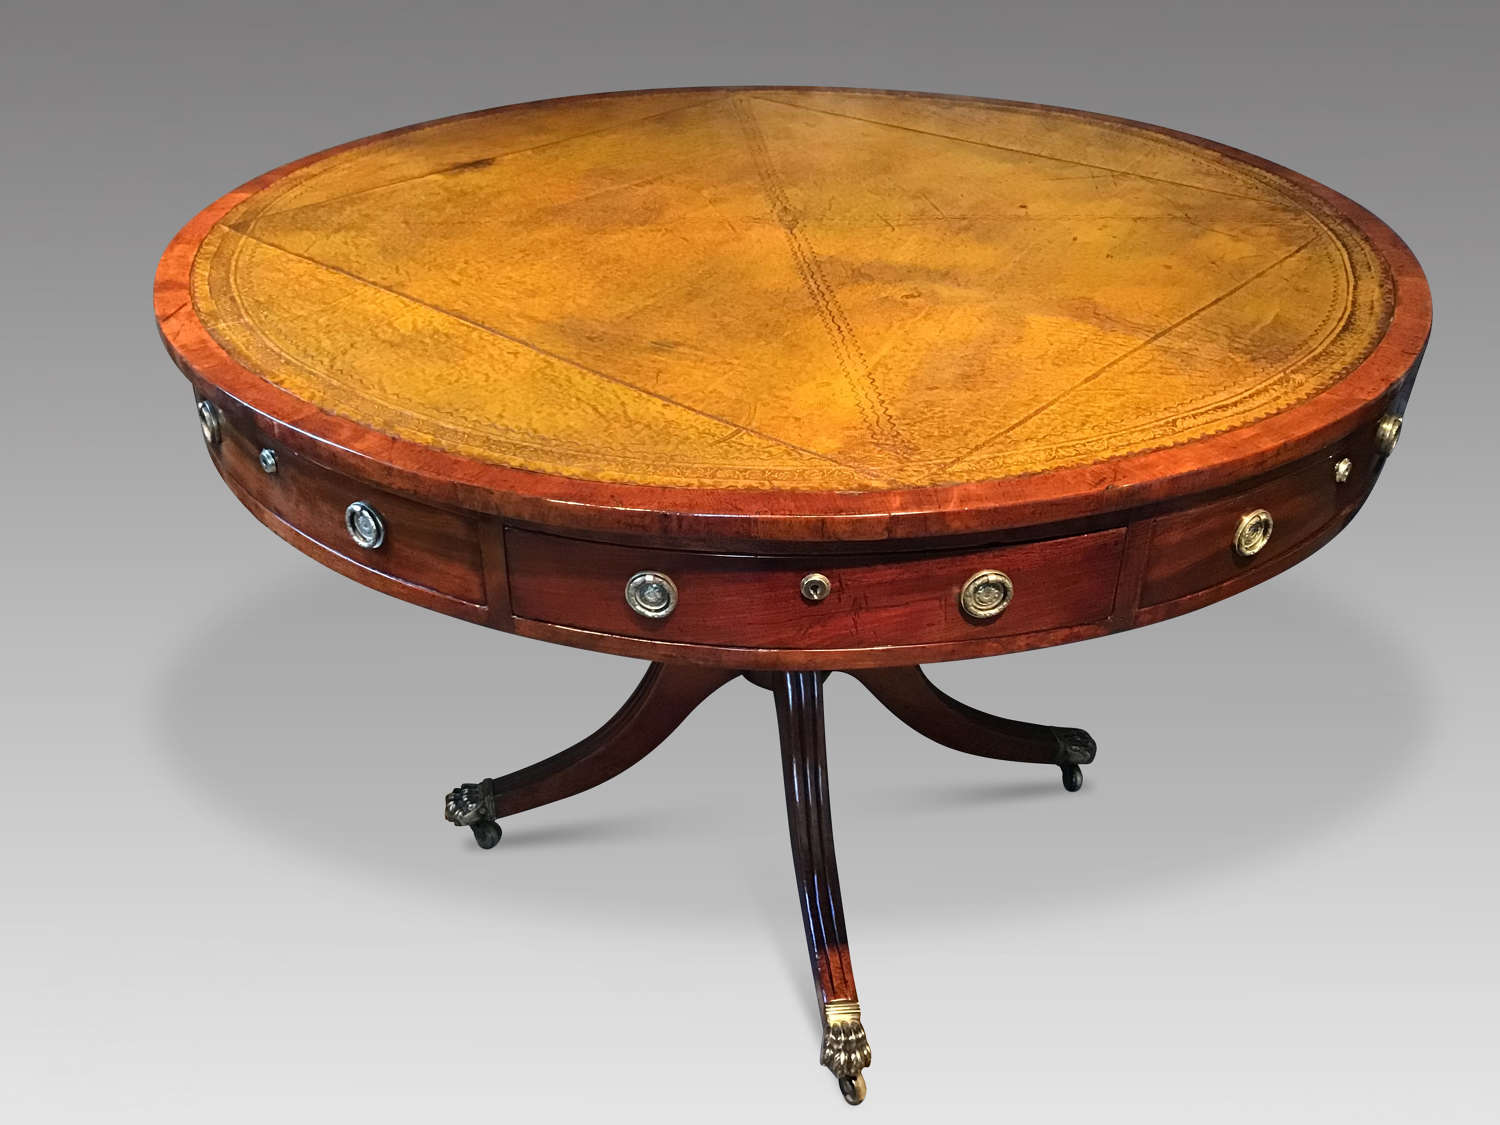 Antique mahogany drum table